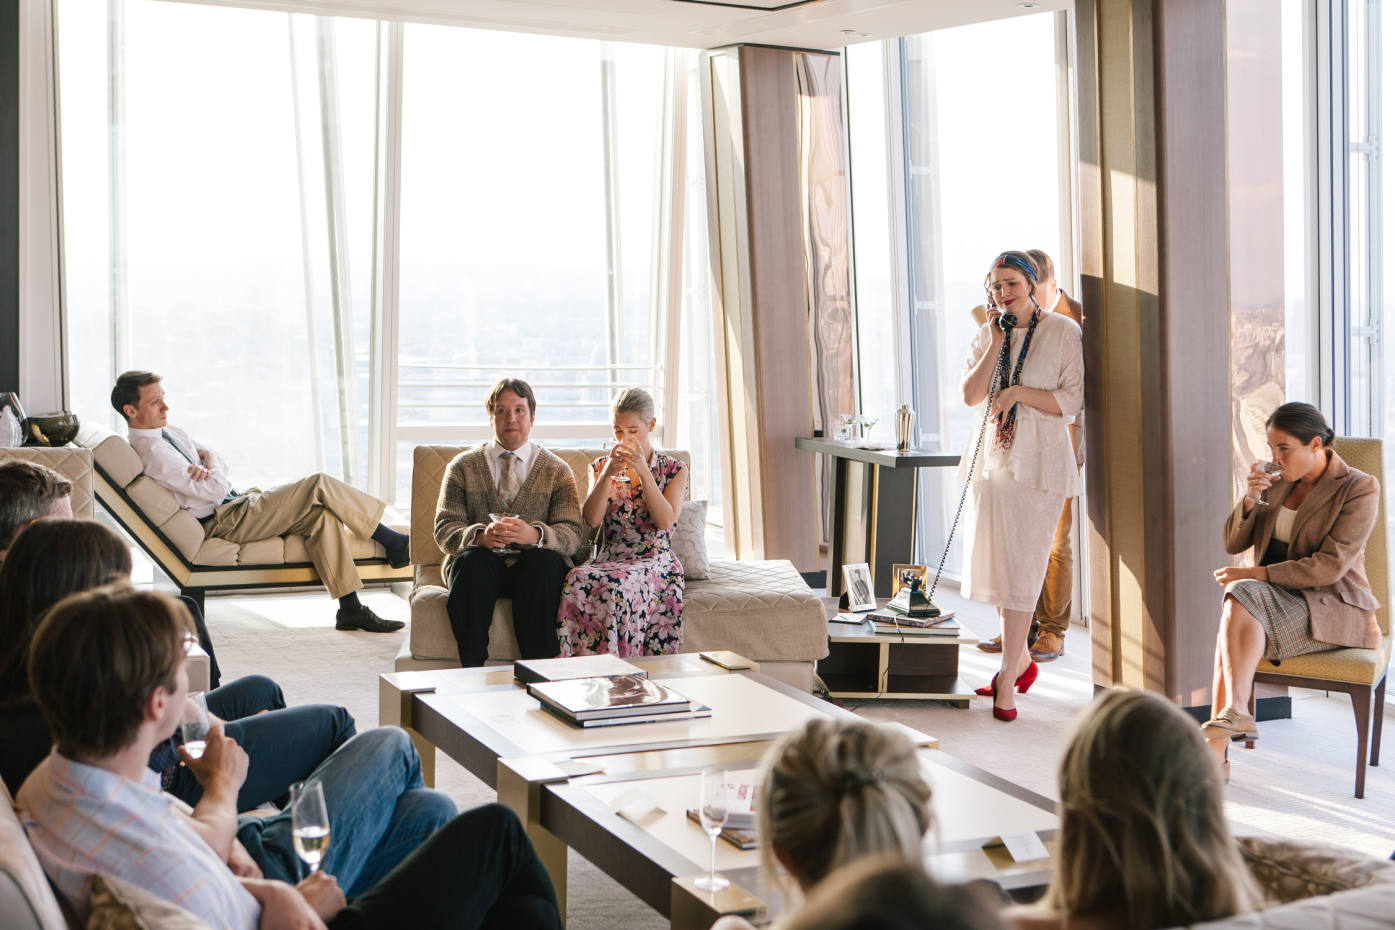 The Revels in Hand productions at the Shangri-La at the Shard will feature actors Mark Donald, Henry Gilbert, Greer Dale-Foulkes, Melanie Fullbrook and Lucy Eaton